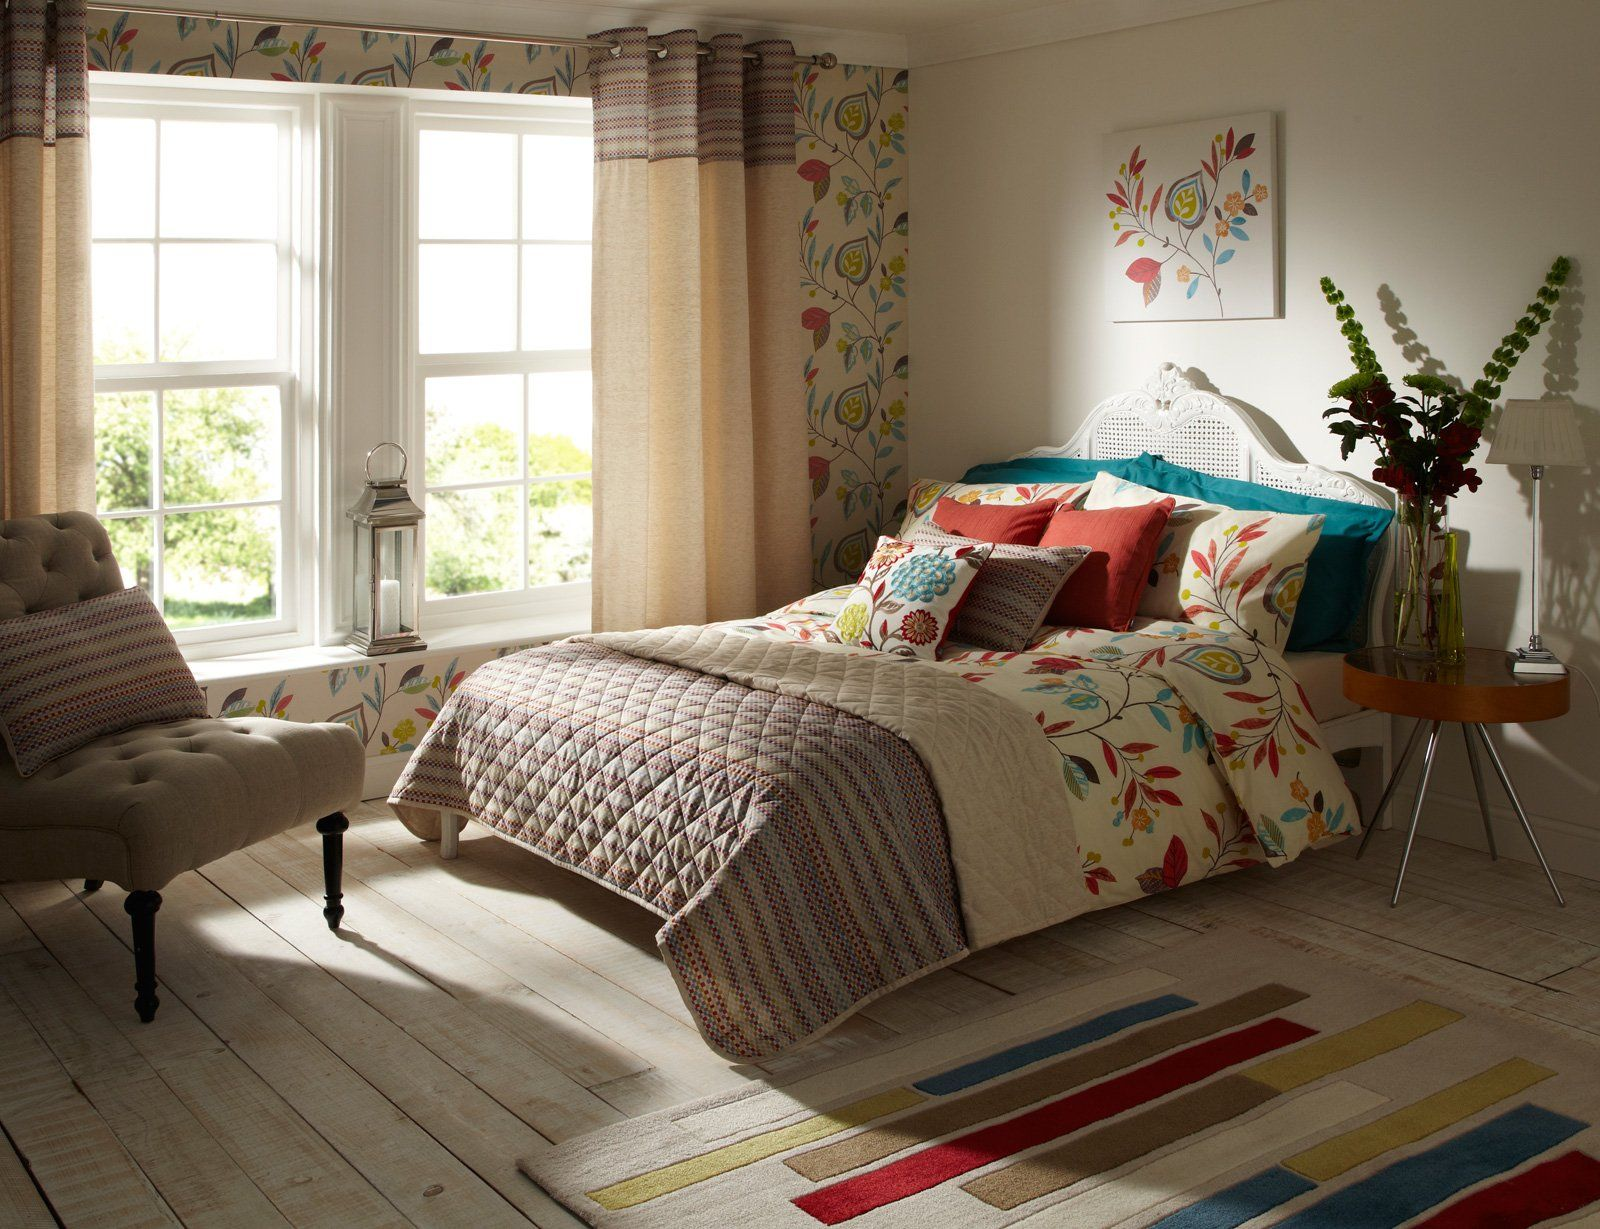 Modern quilt bedding - Modern Duvet Covers Luxury Printed Bedding Contemporary Quilt Covers Bed Sets Multi Coloured